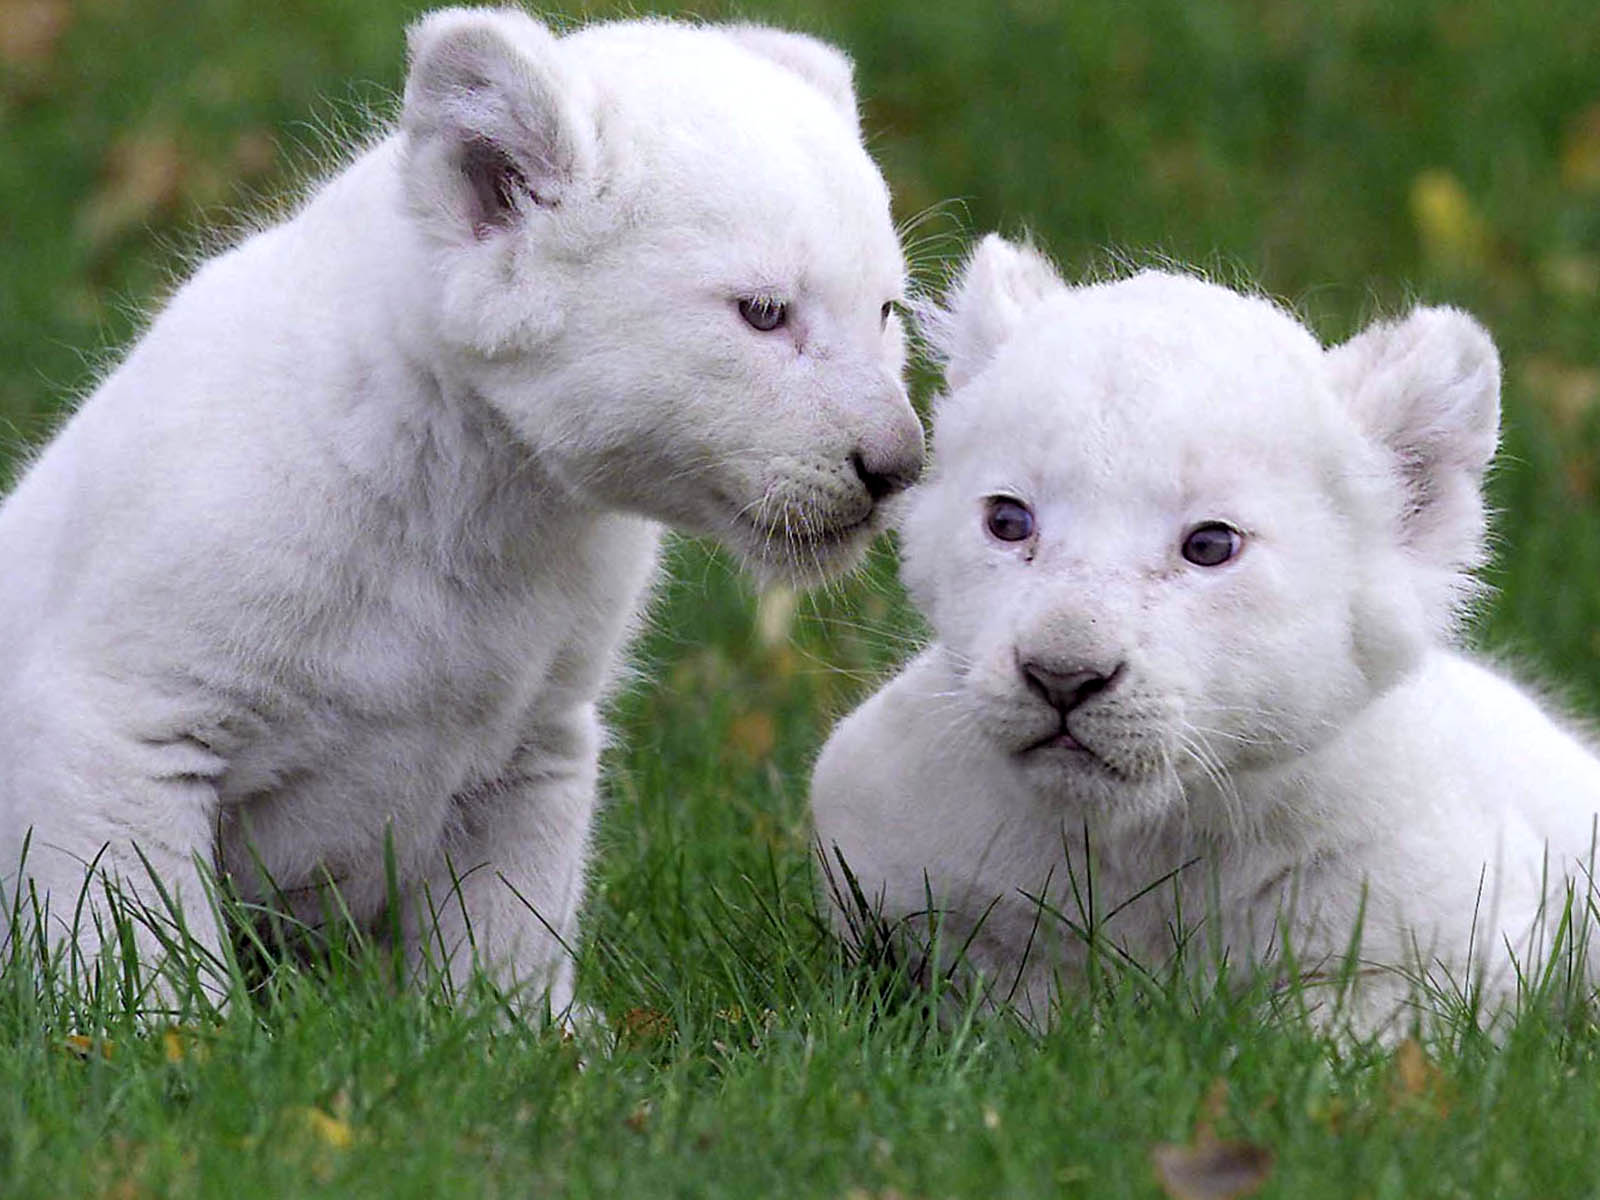 Baby White Lion Funny Wallpapers Hd Desktop And Mobile